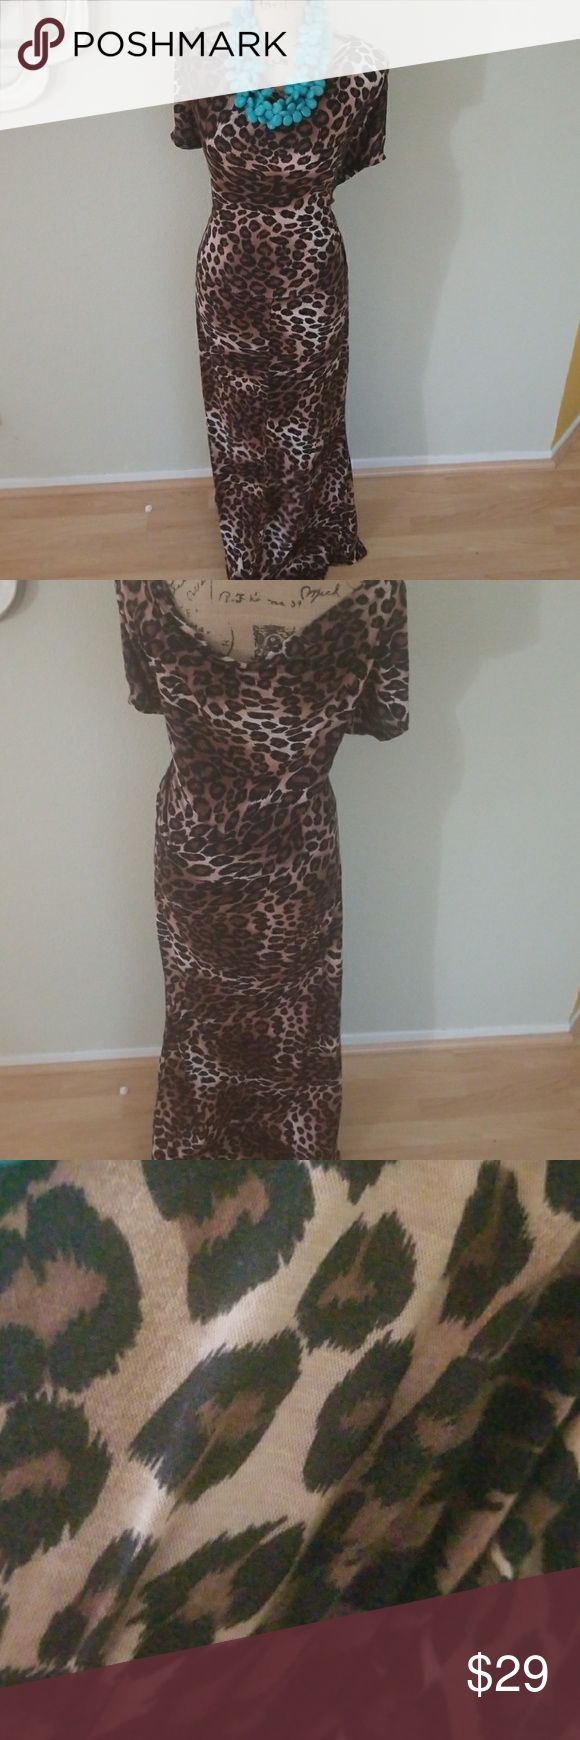 Animal print dress..ohh so much Fun Animal print dress..ohh so much Fun Wonderfully flexible enough to be worn low on the shoulders, low in front and back and with Just about any color shoes...Command presence! Dresses Maxi